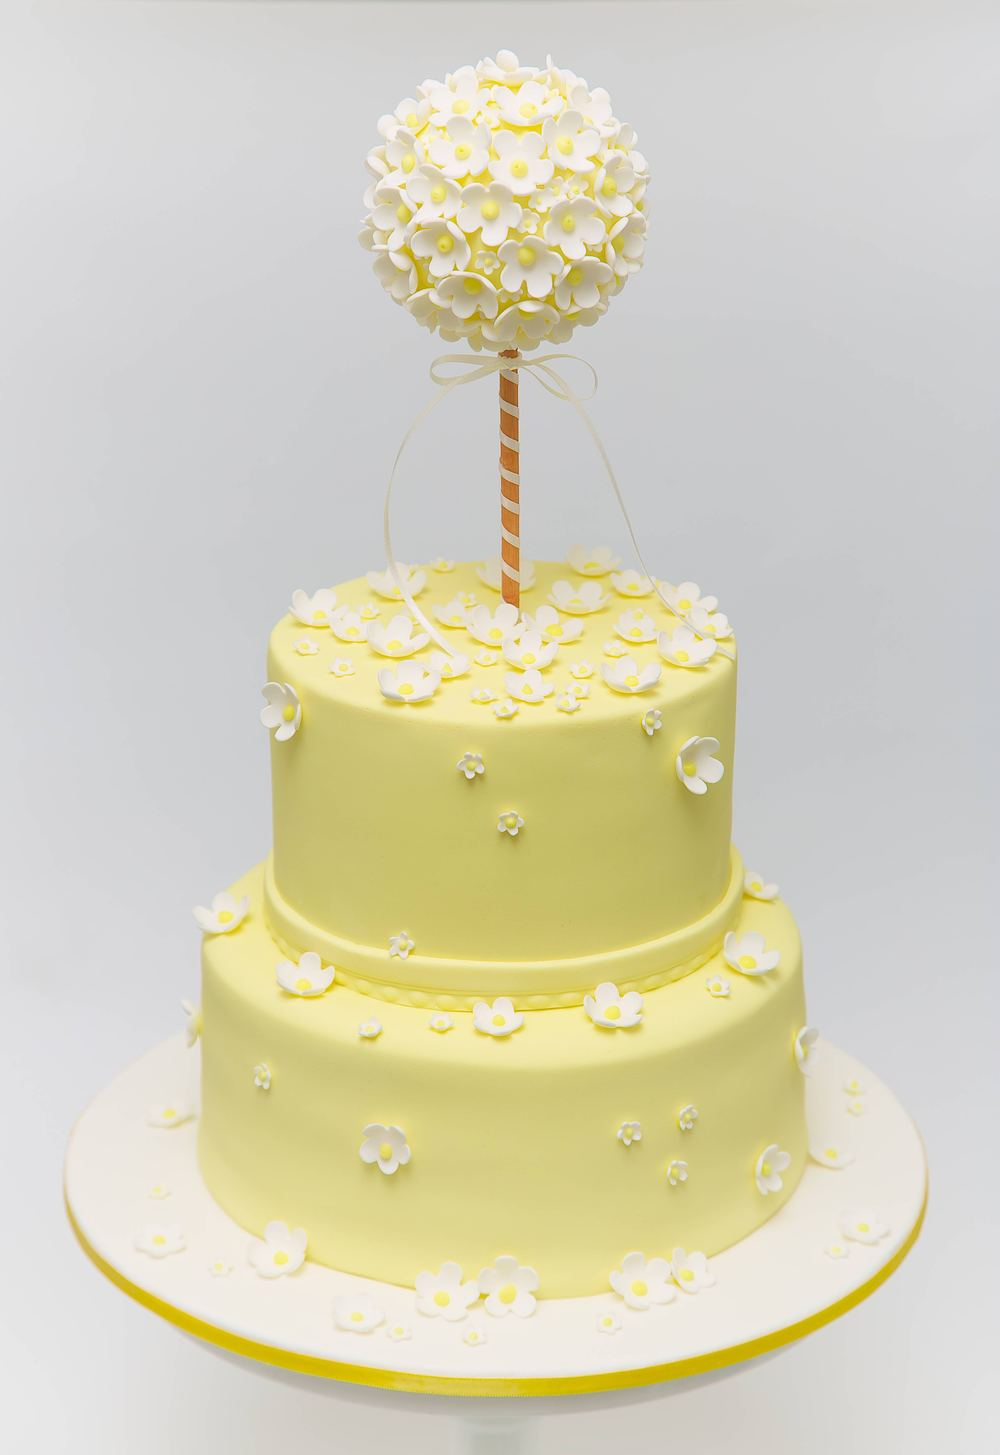 wedding cakes byron bay area cake gallery byron bay cake boutique 24000